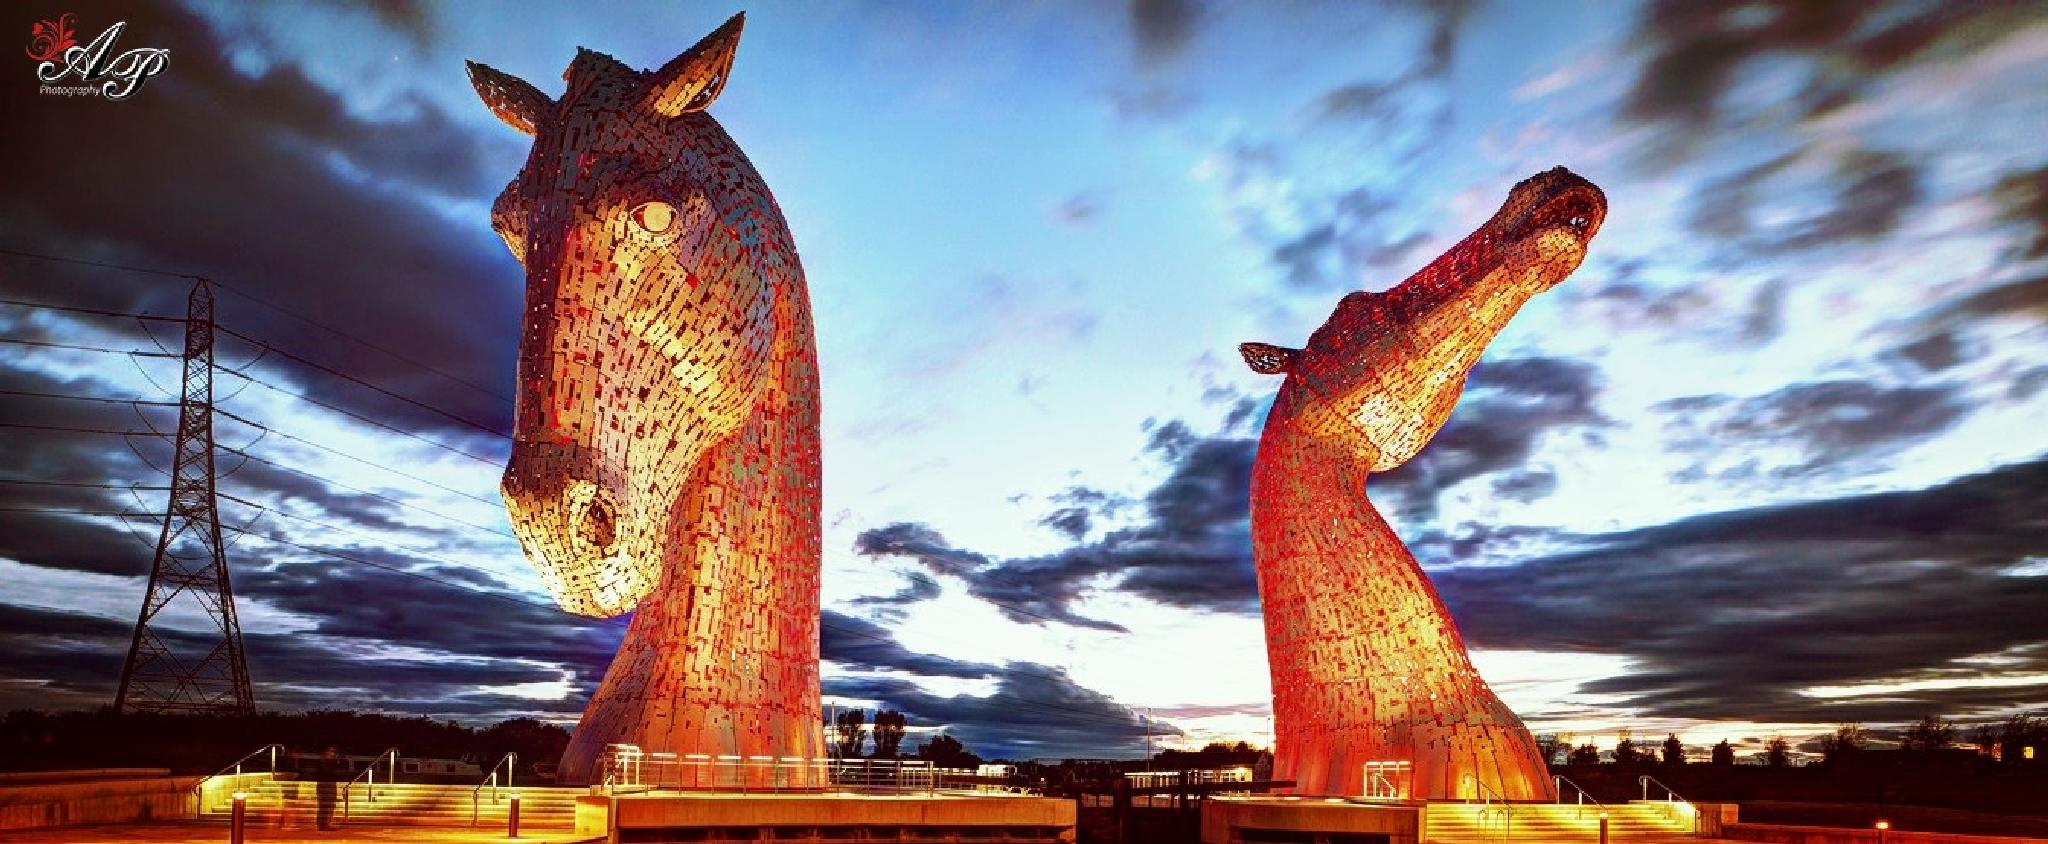 Kelpies in Falkirk, Scotland  by Arin Podder